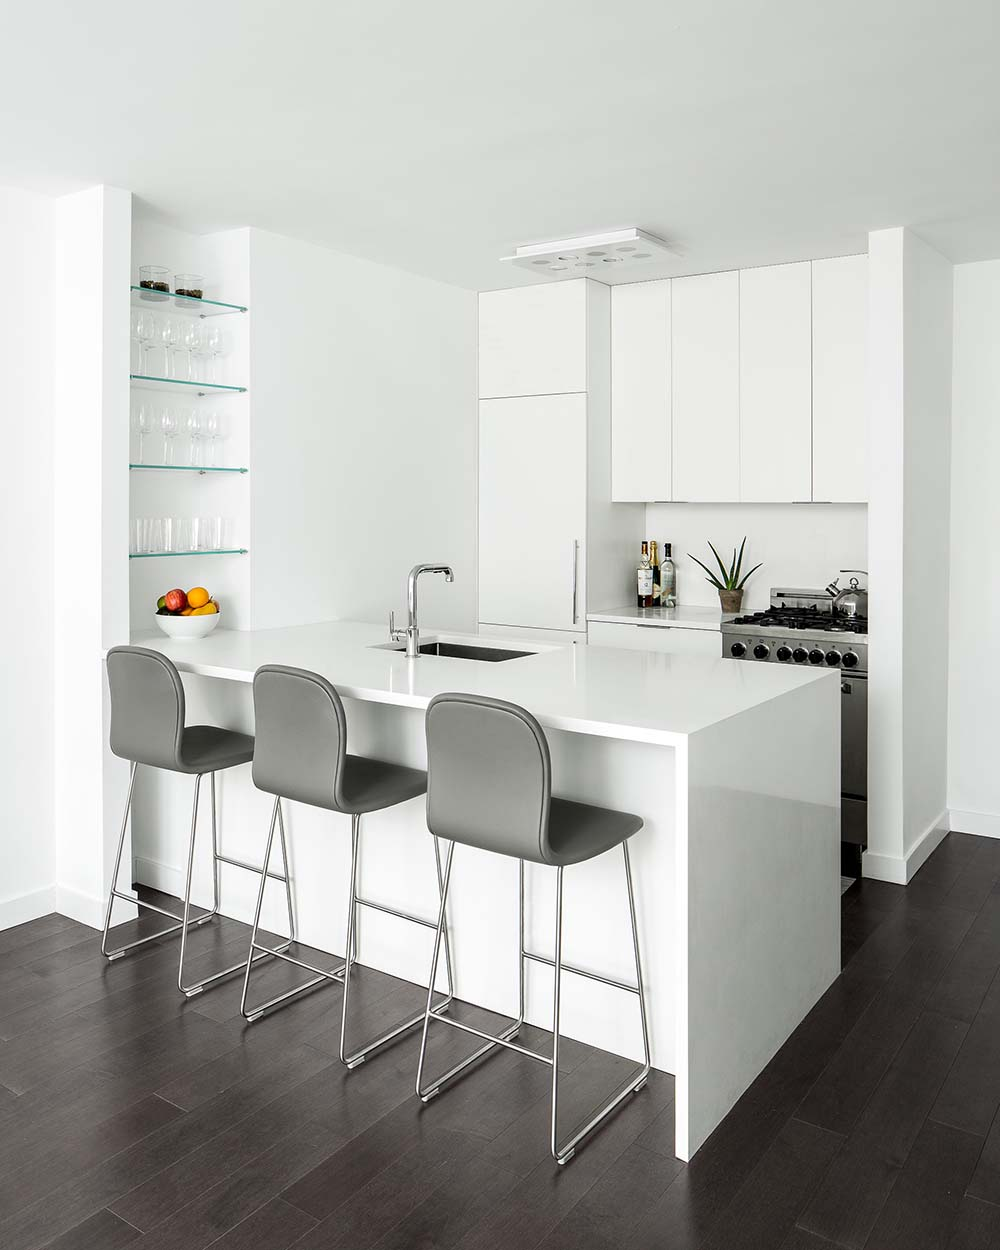 A modern white kitchen with an integrated fridge, a peninsula with a waterfall countertop, and a shelving niche with glass shelves.